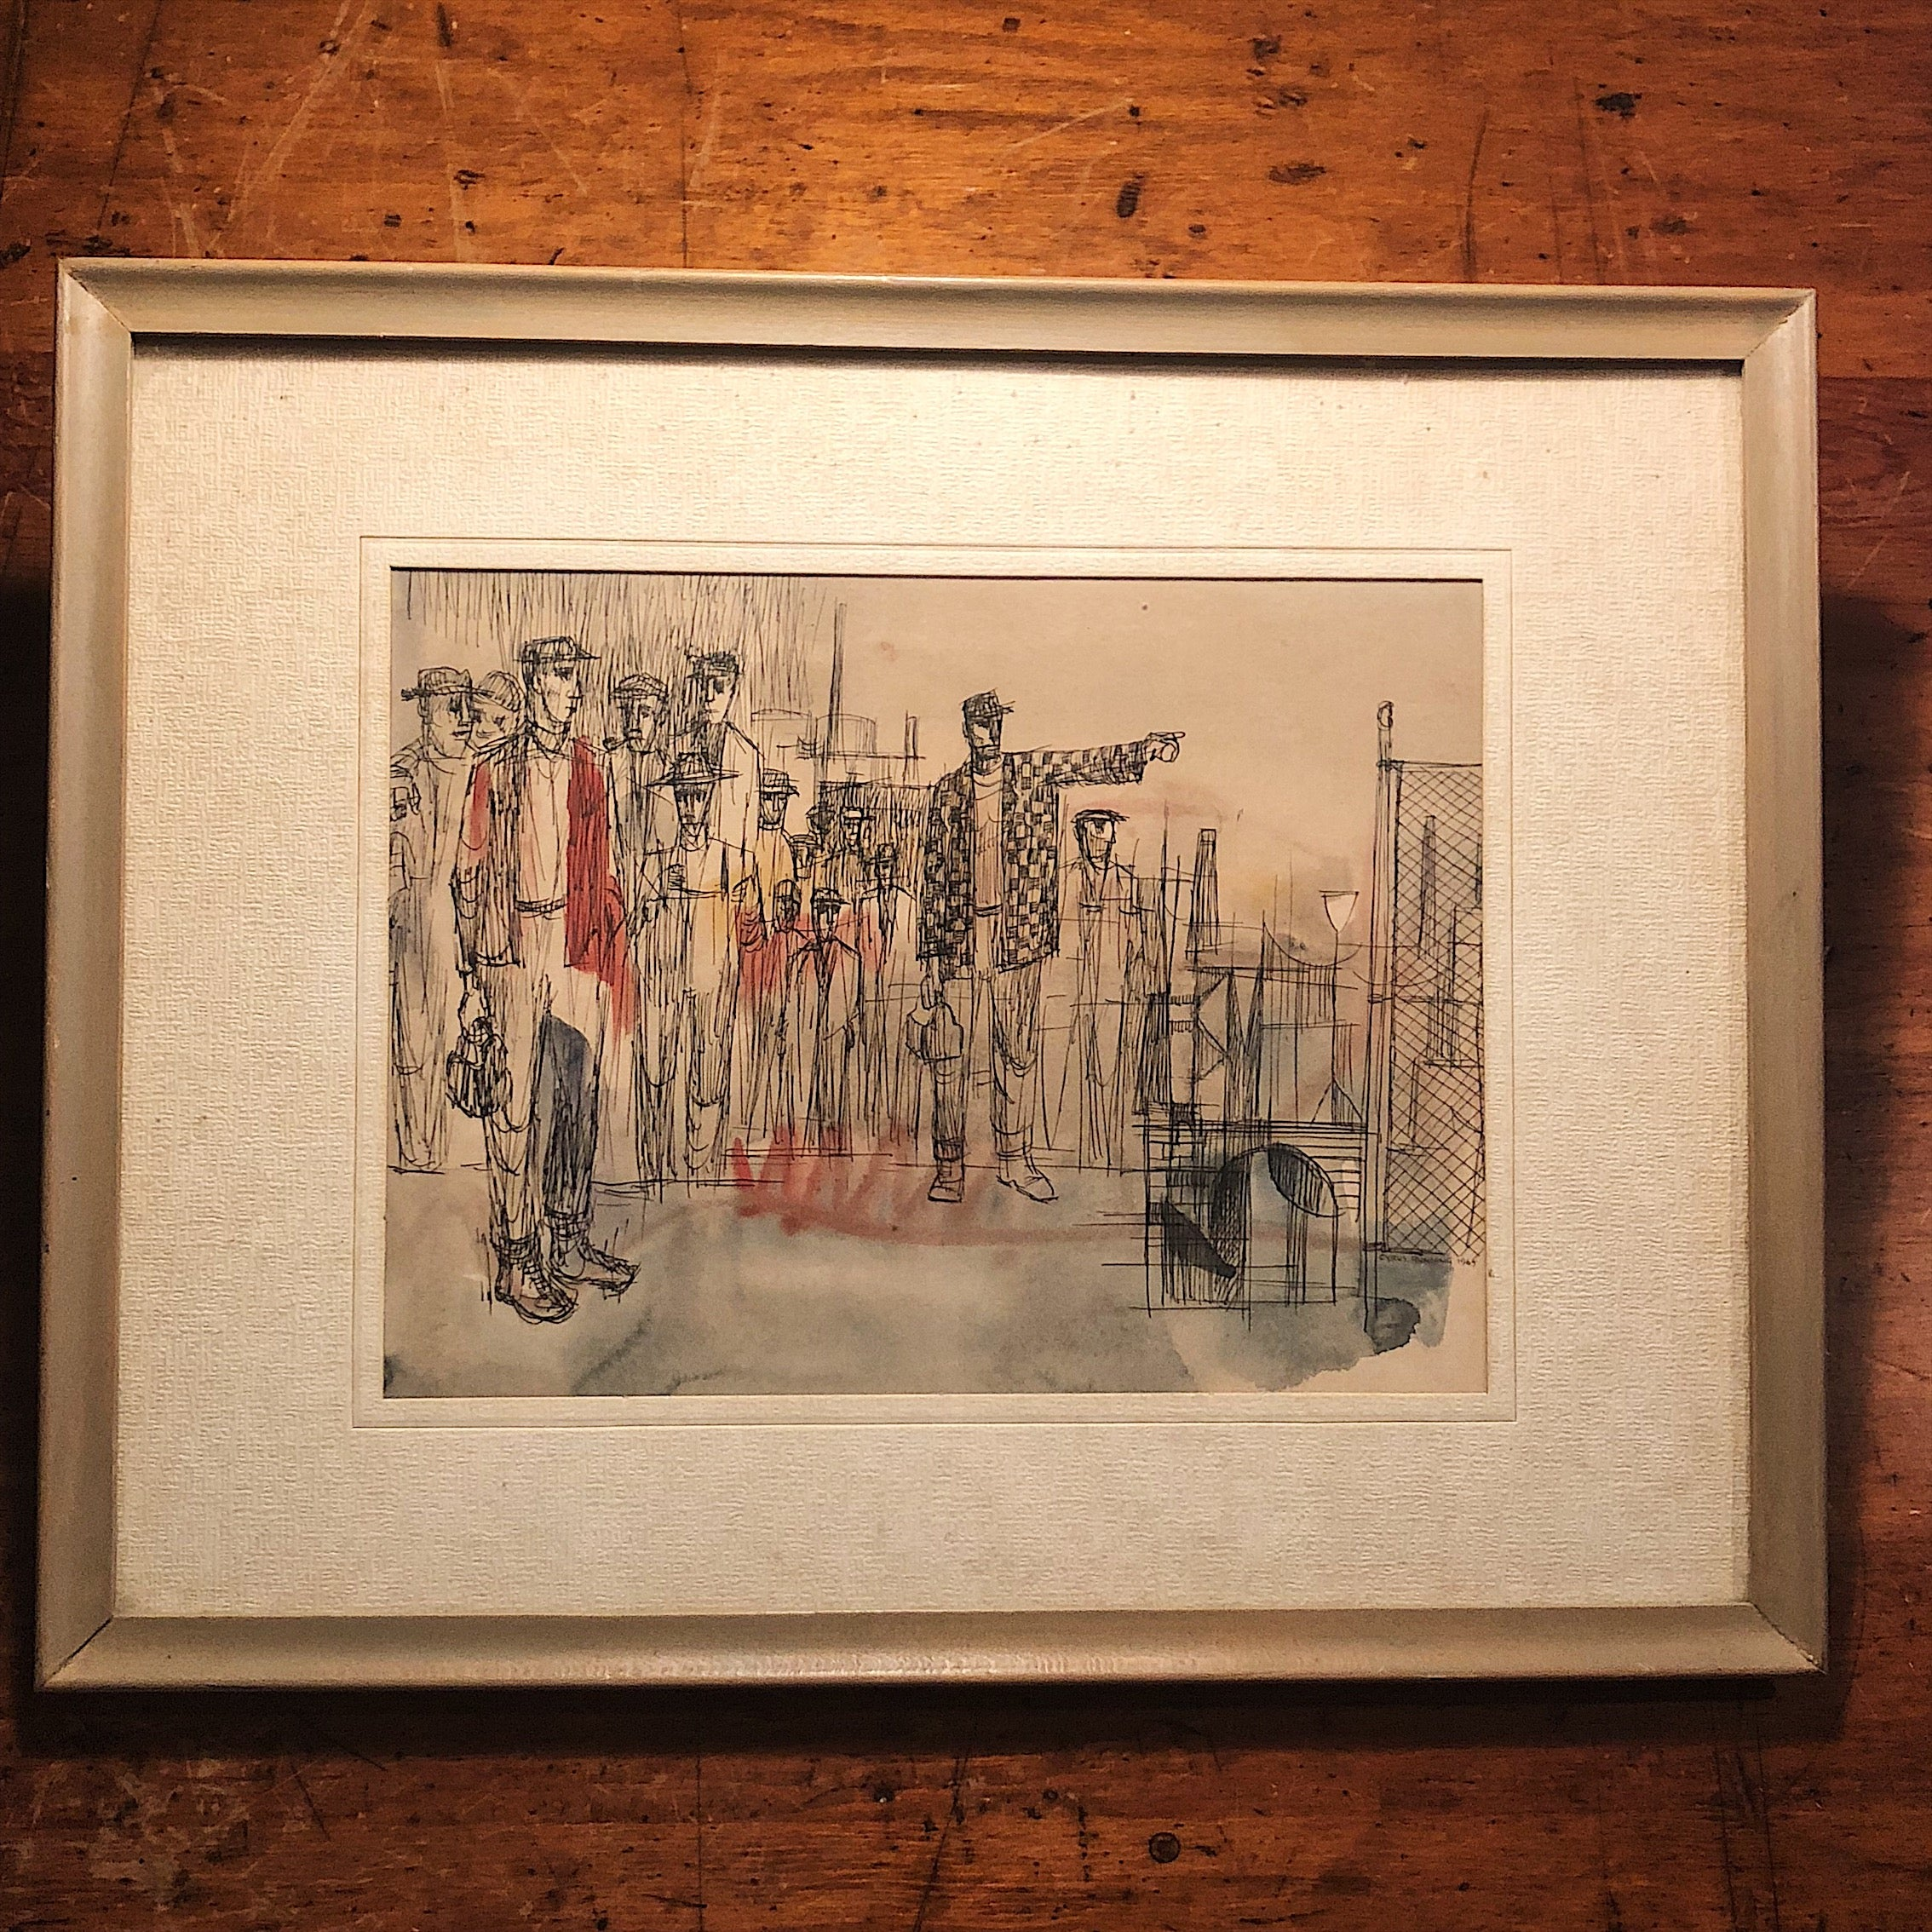 Framed artwork | Cyrus Running Painting from 1965